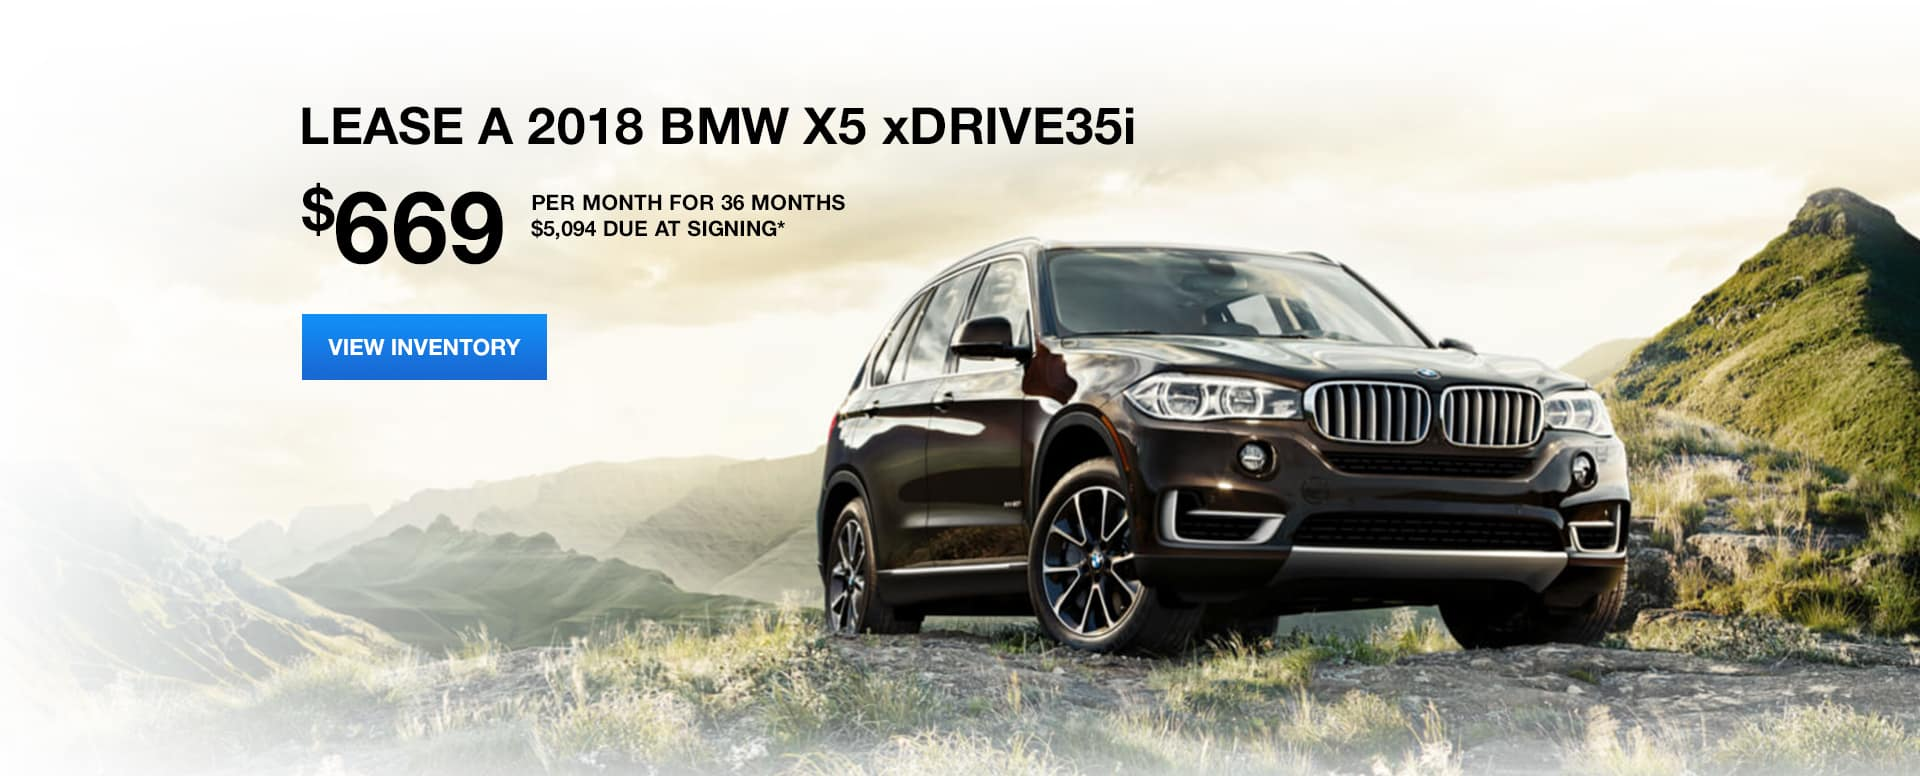 x5 sDrive October Lease Offer